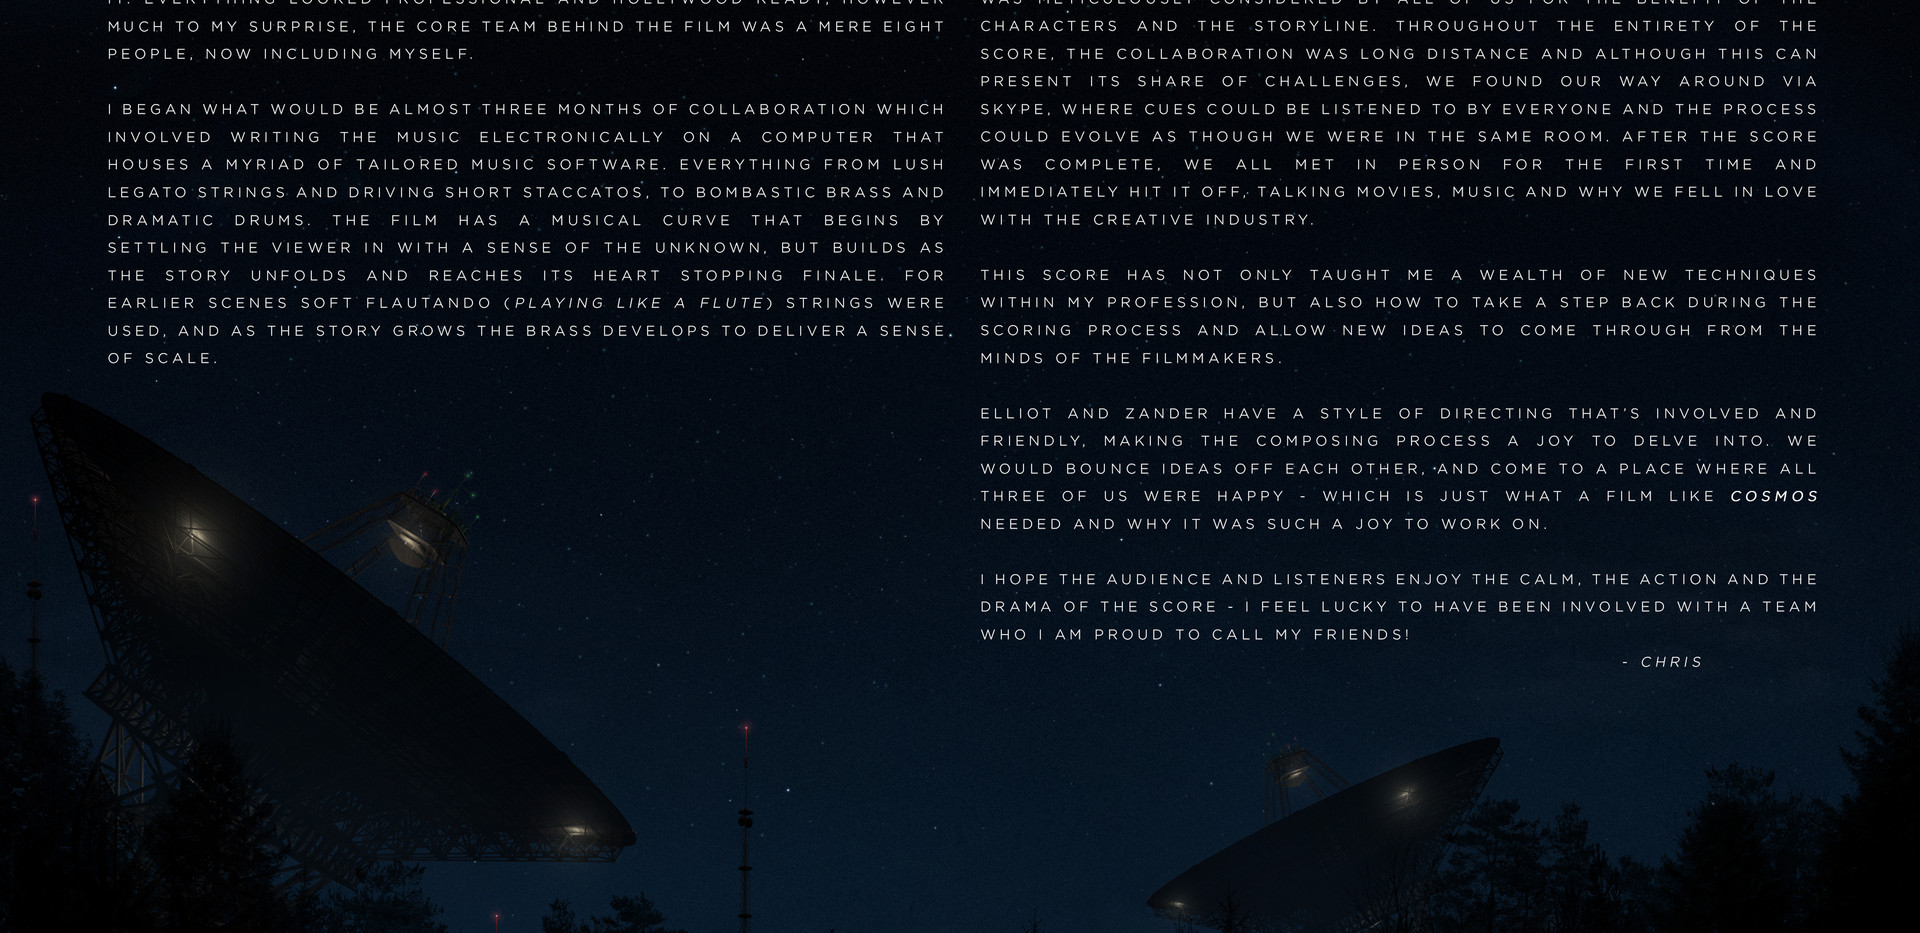 Itunes booklet page 4.jpg